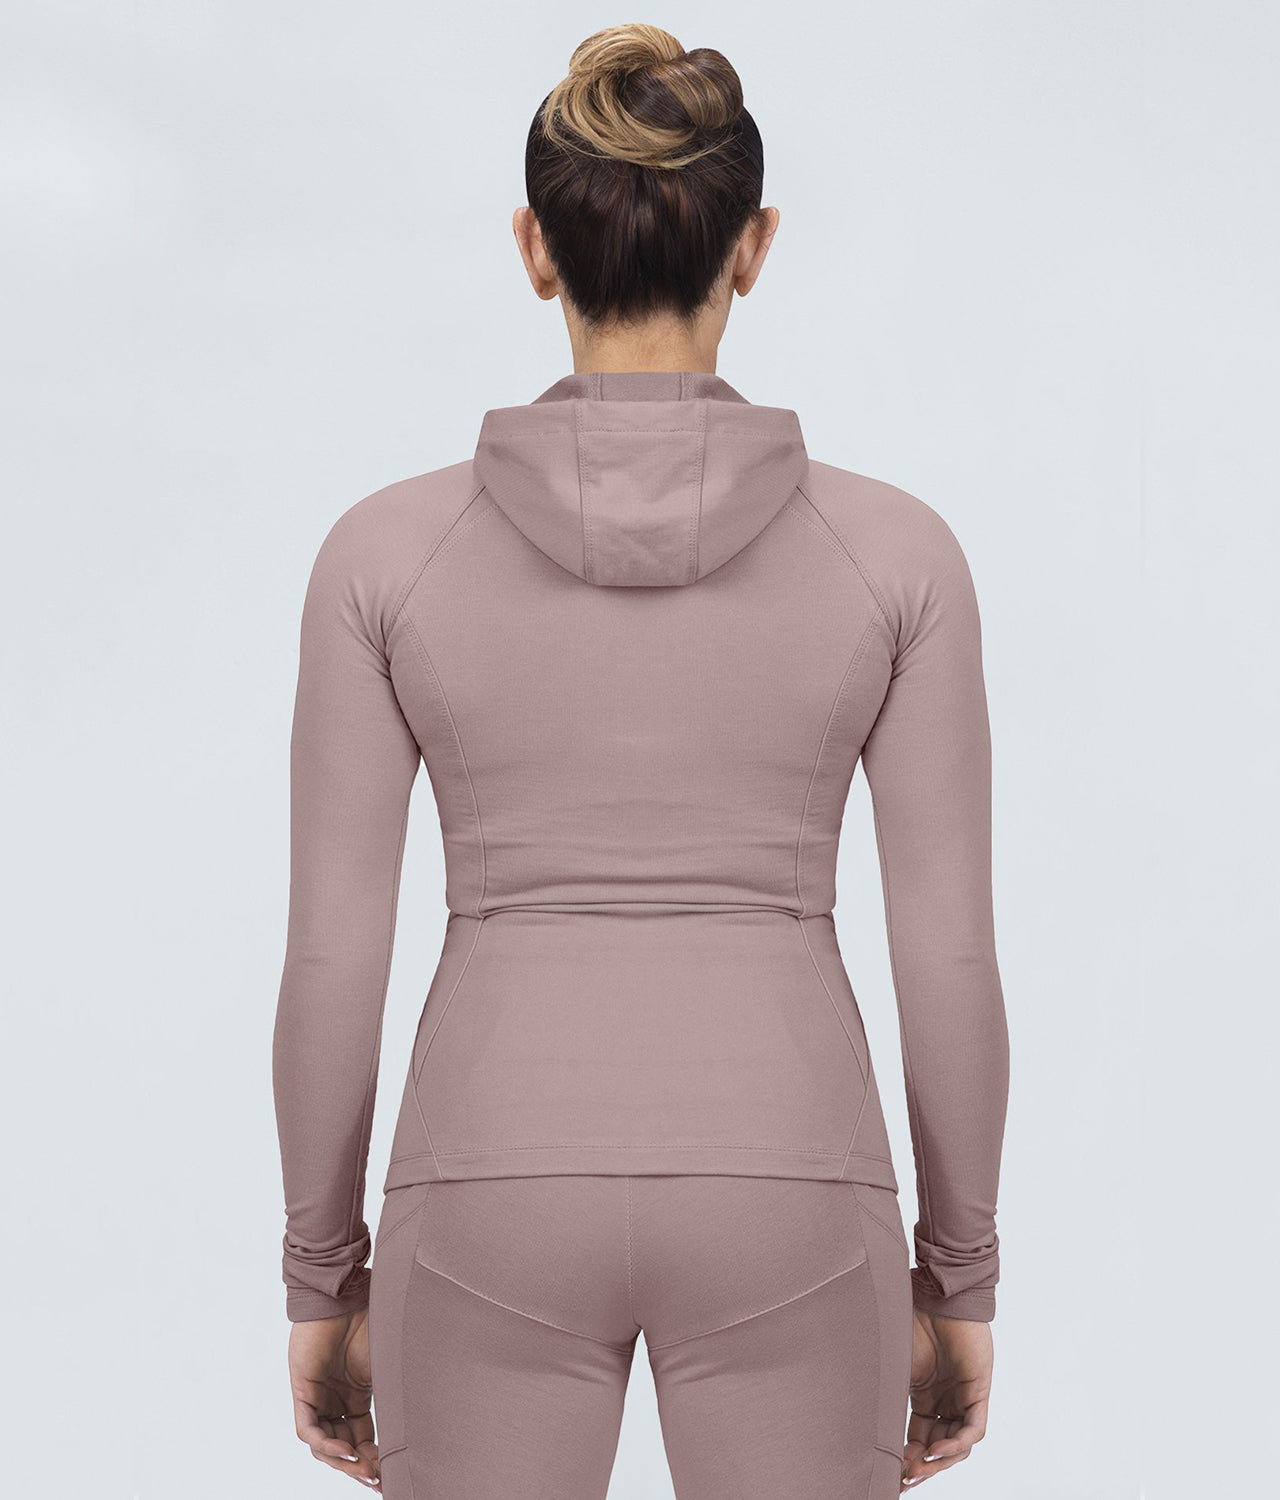 Born Tough Contoured Rose Zippered Closure Sleeve Loops Gym Workout Tracksuit Hoodie for Women